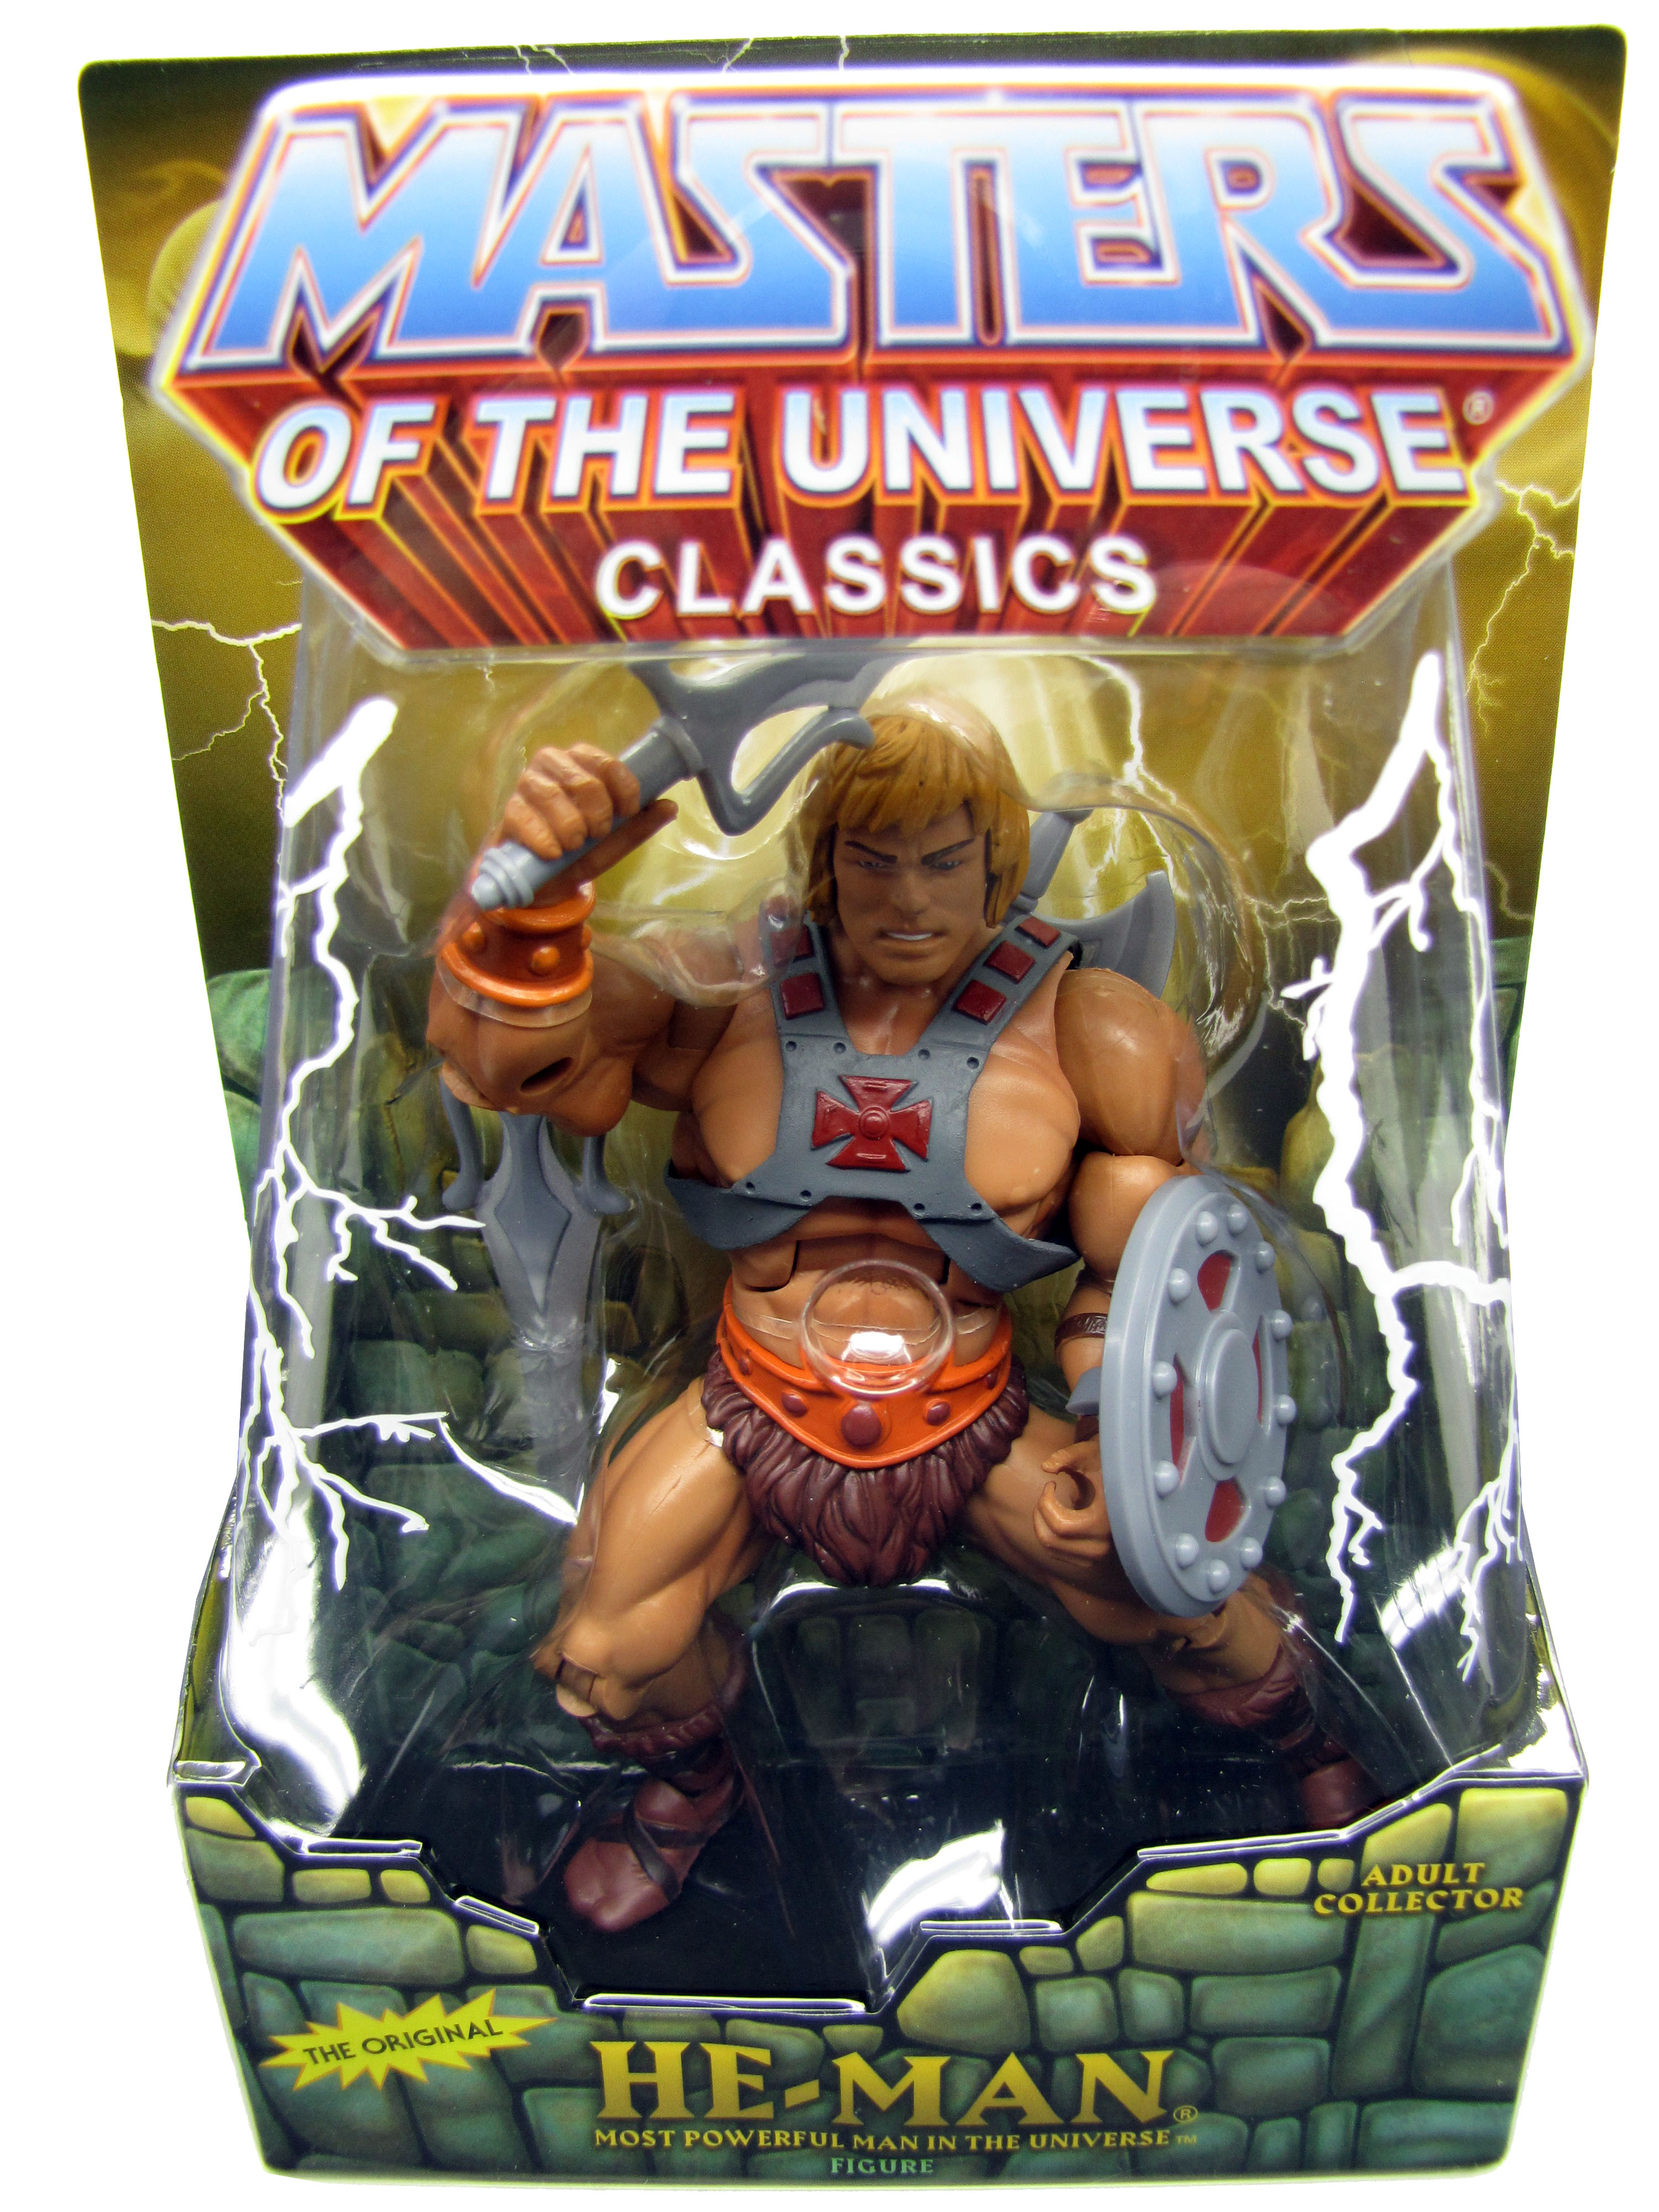 2008 Masters of the Universe Classics He-Man Sealed Mint on Card